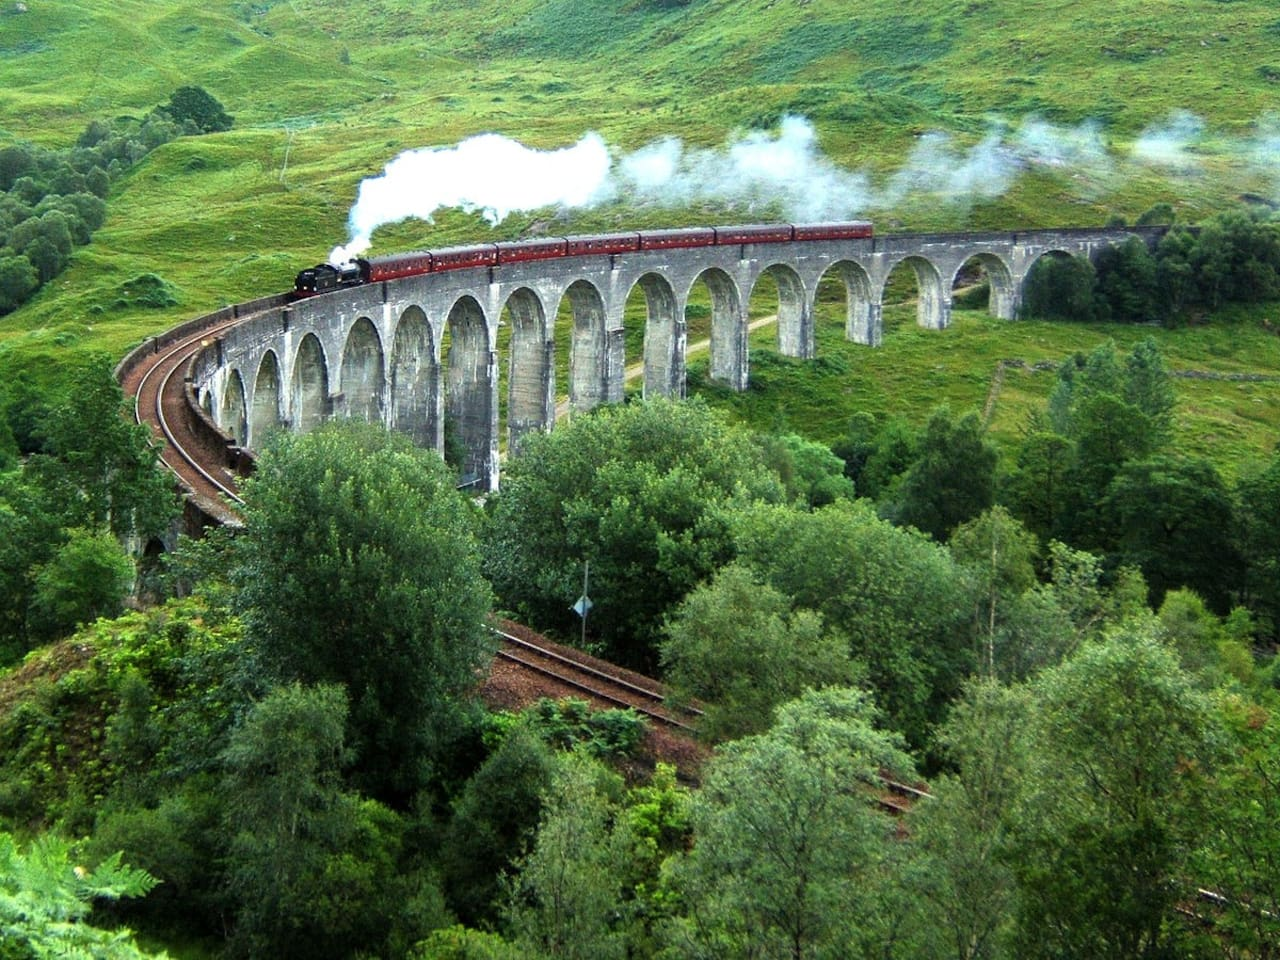 Jacobite Steam Train going over Glenfinnan Viaduct, 25 minutes drive from the apartment.